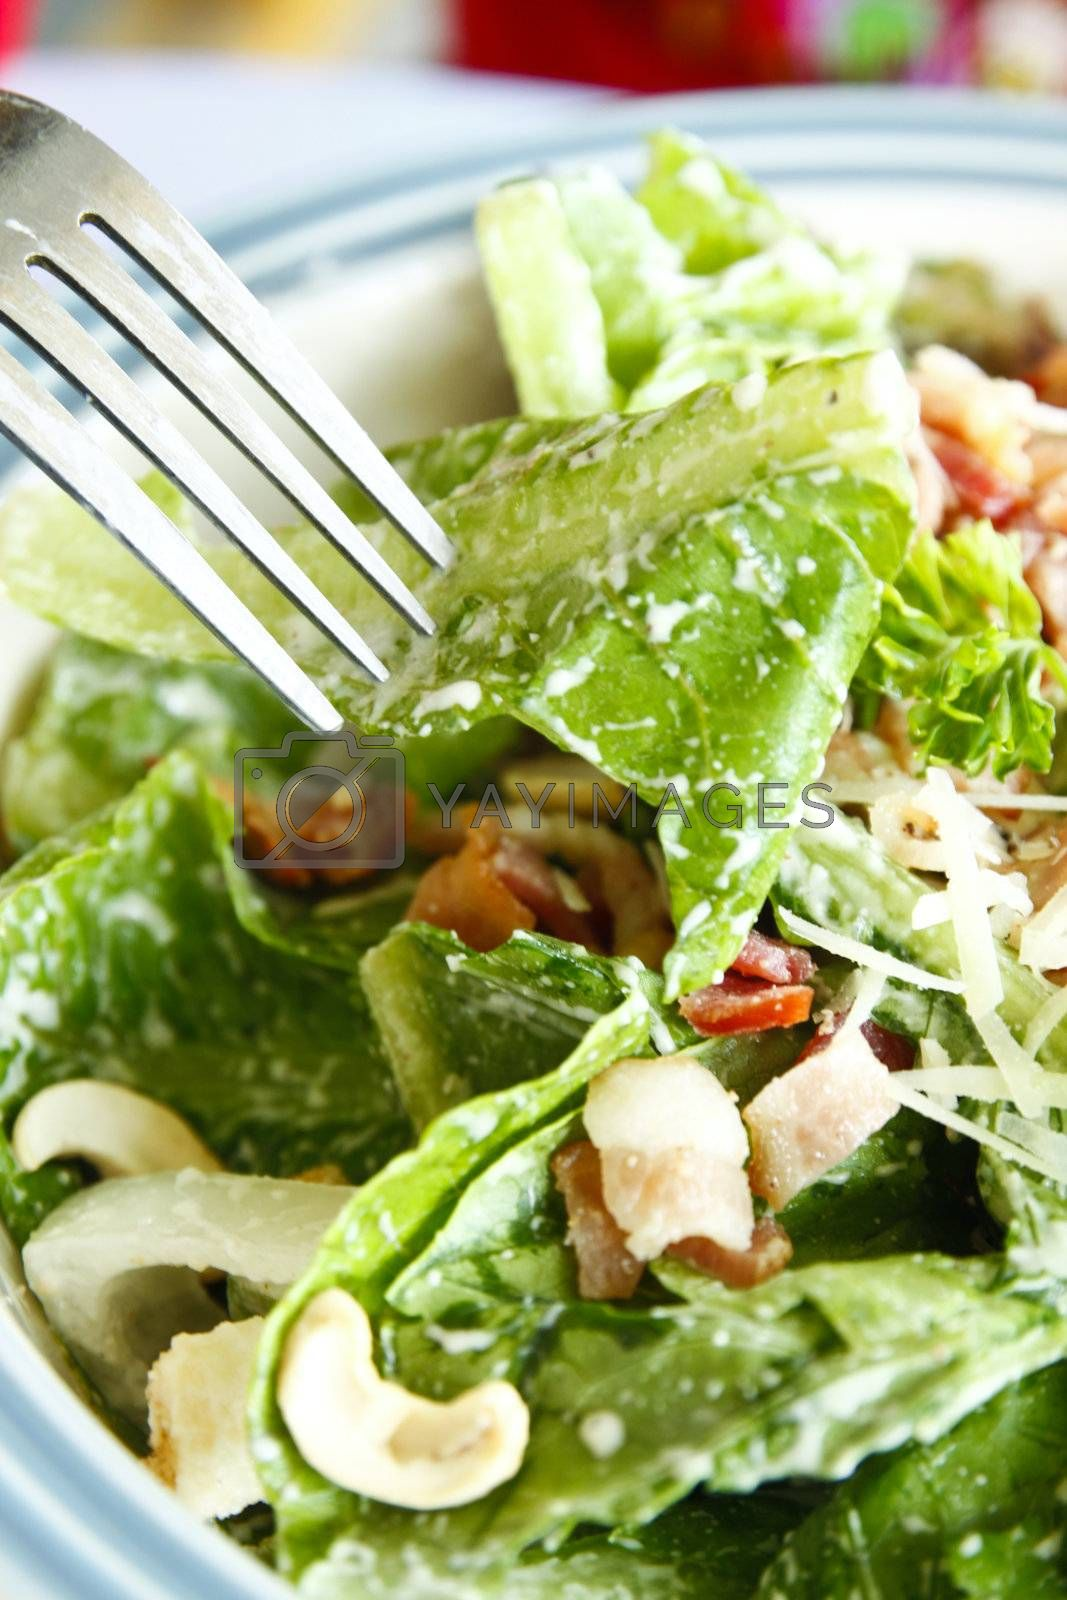 Delicious caesar salad with fork